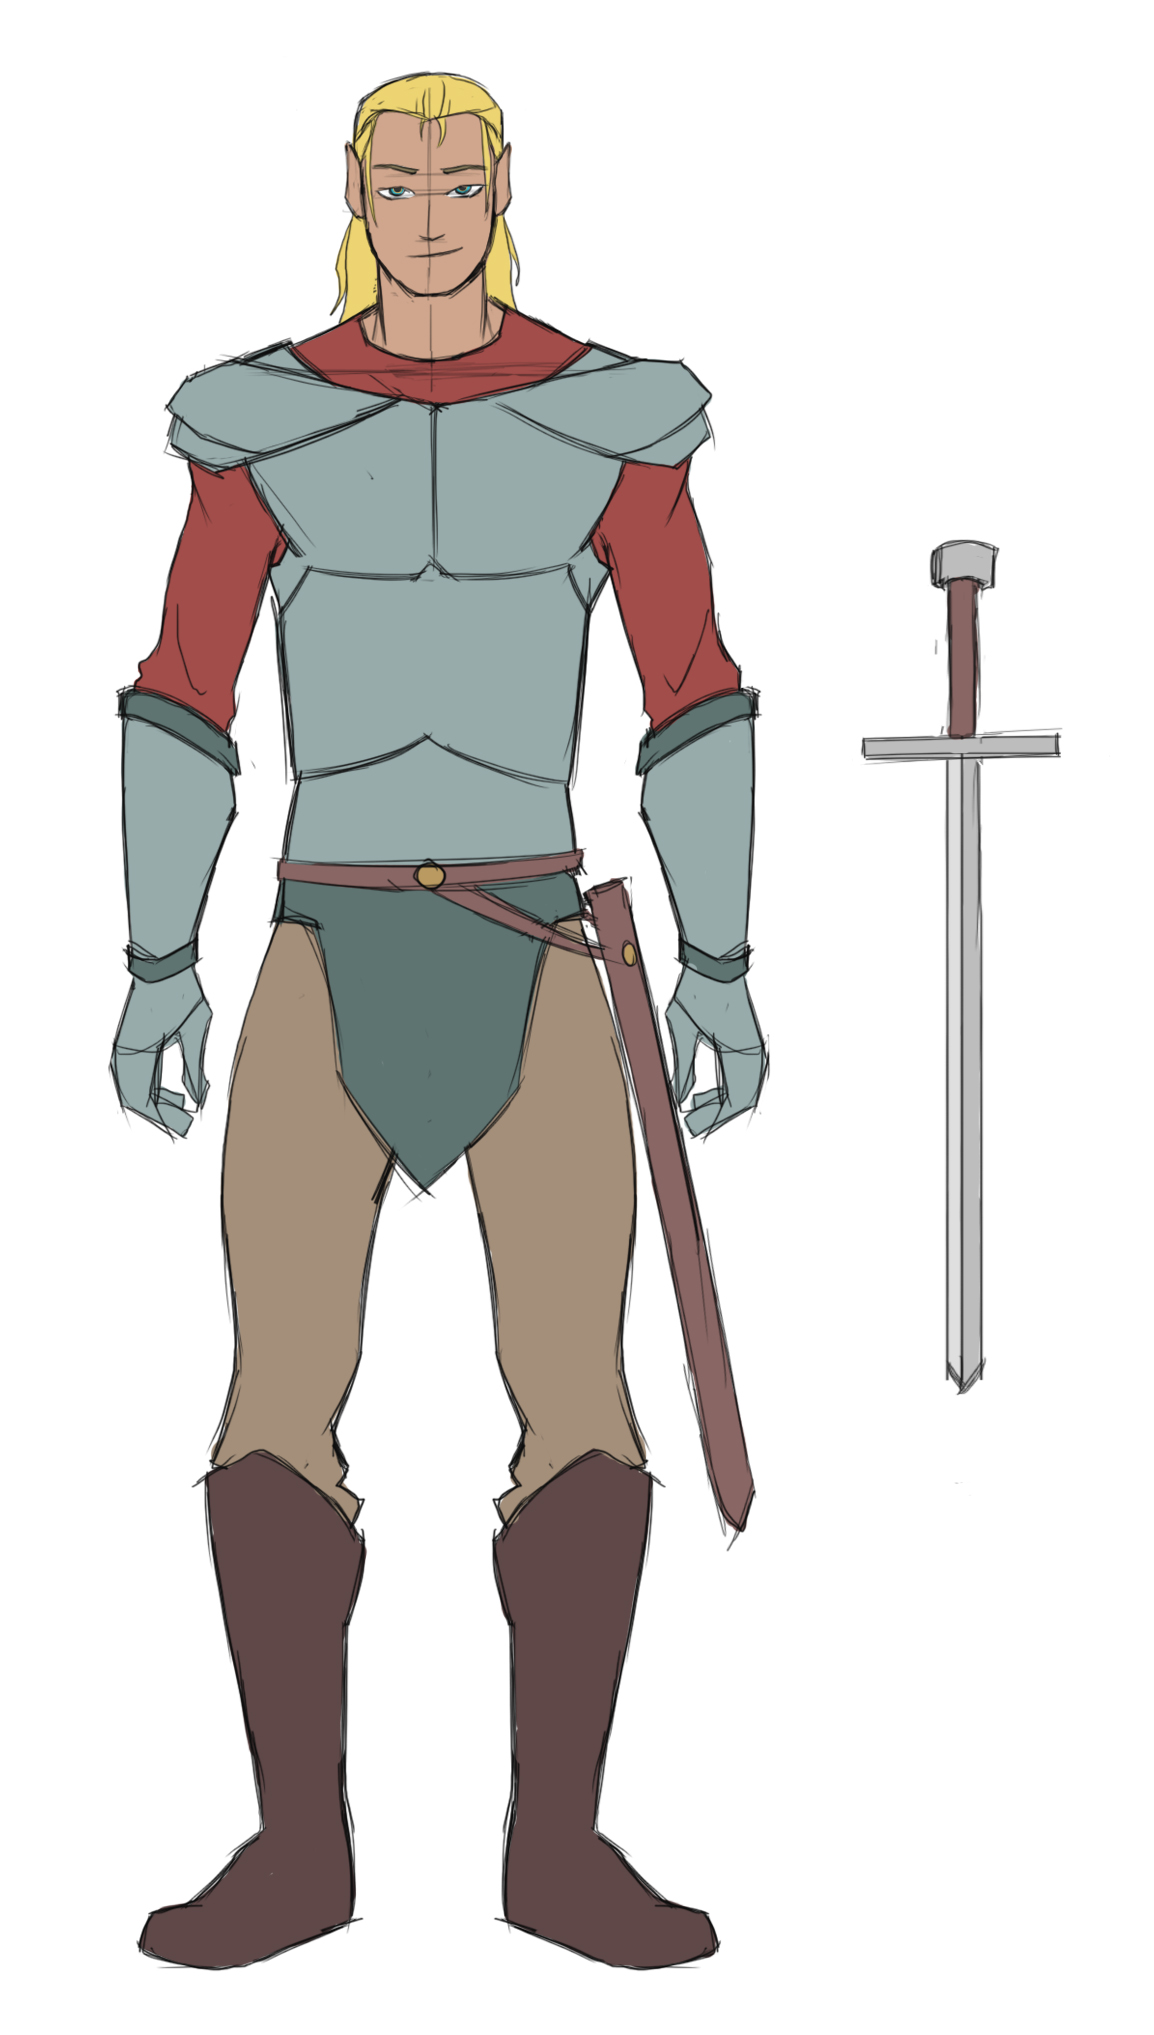 Tall, built male wearing pale armor with gauntlets, a burnt orange under-shirt, and brown pants, boots, and sword belt. He dons long hair half up – his ears slightly pointed. His sword is displayed at the side – a brown hilt and silver blade.